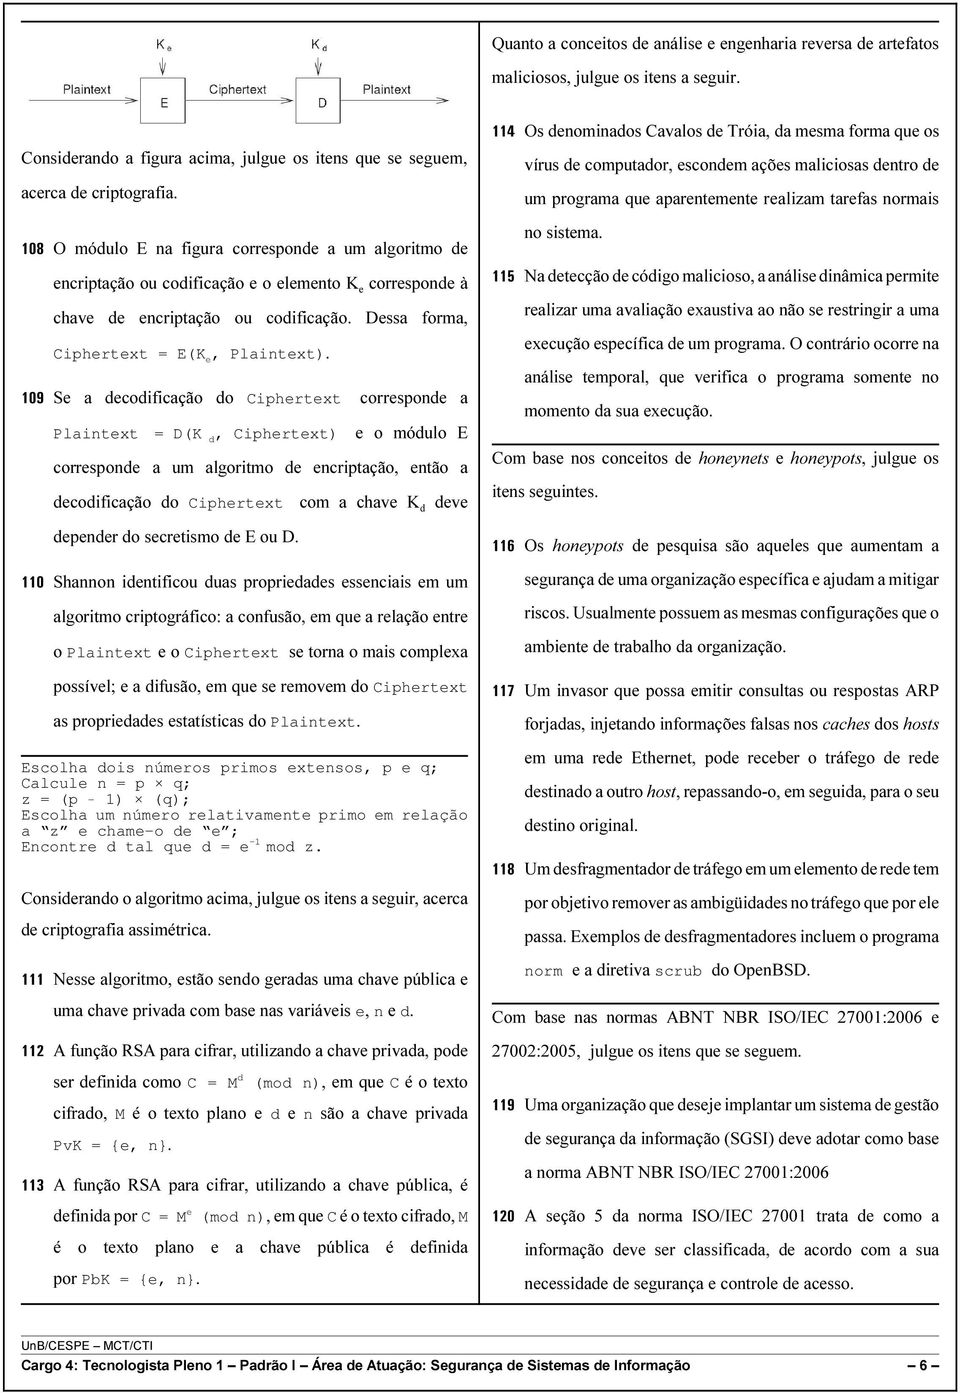 109 Se a decodificação do Ciphertext corresponde a Plaintext = D(K d, Ciphertext) e o módulo E corresponde a um algoritmo de encriptação, então a decodificação do Ciphertext com a chave K d deve